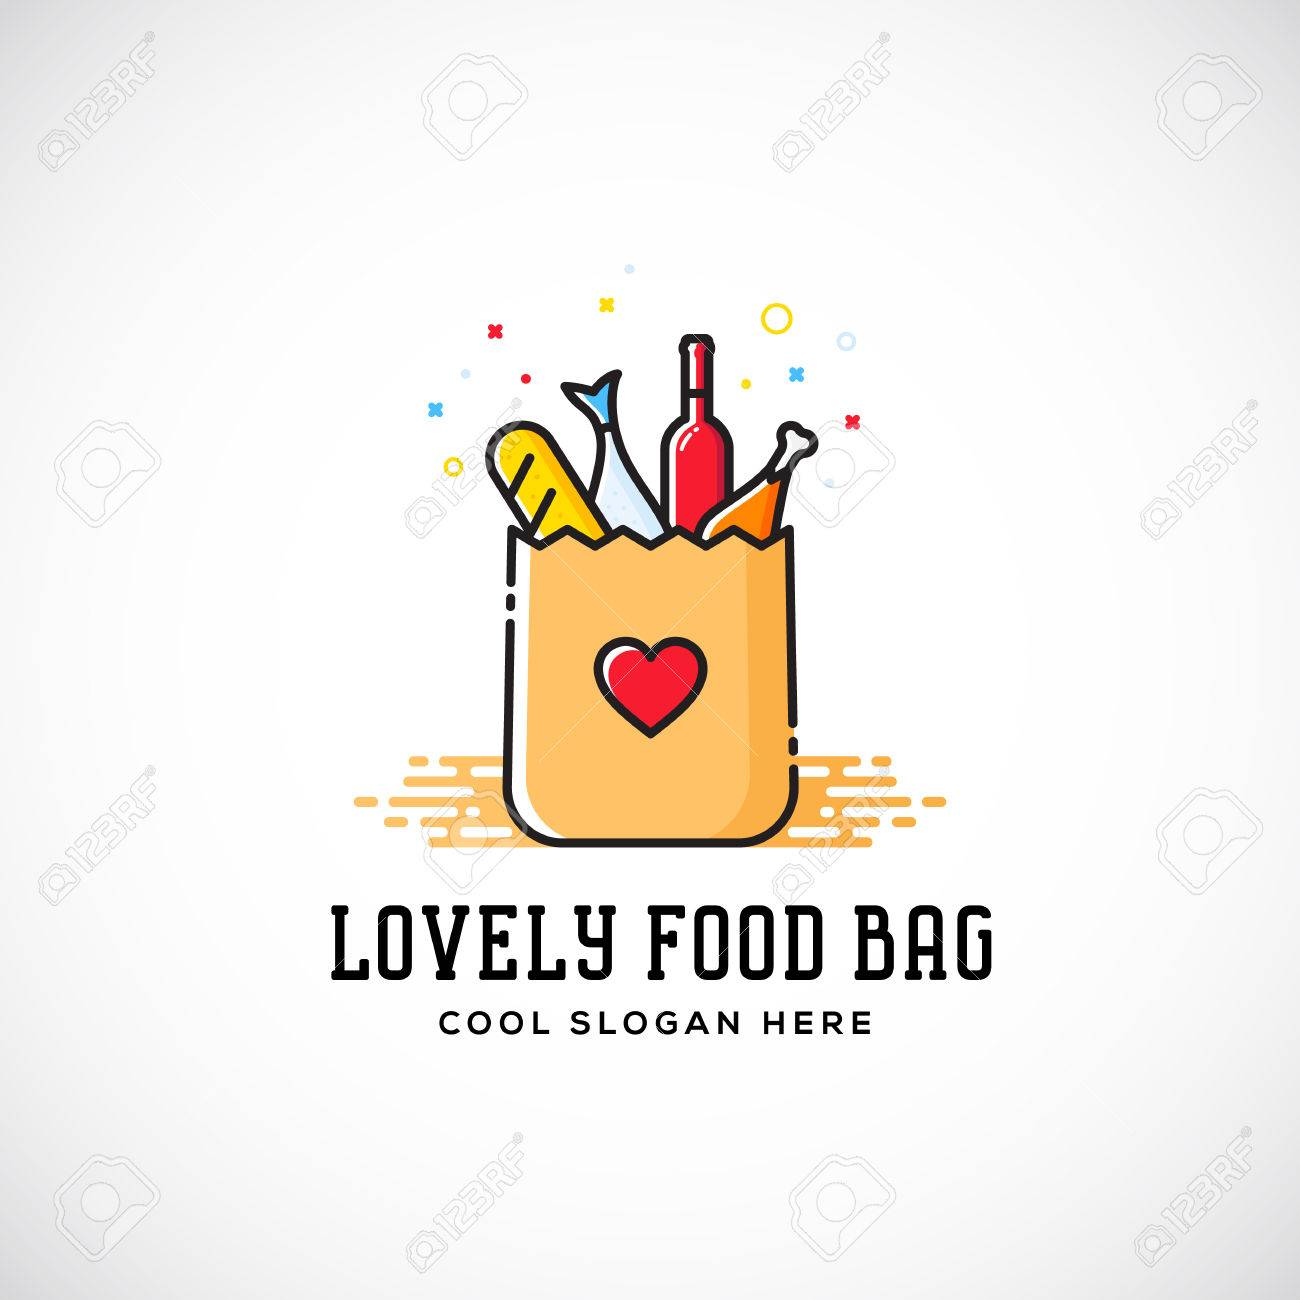 Lovely Food Paper Bag With Heart Symbol, Bread, Wine, Fish, Etc ...